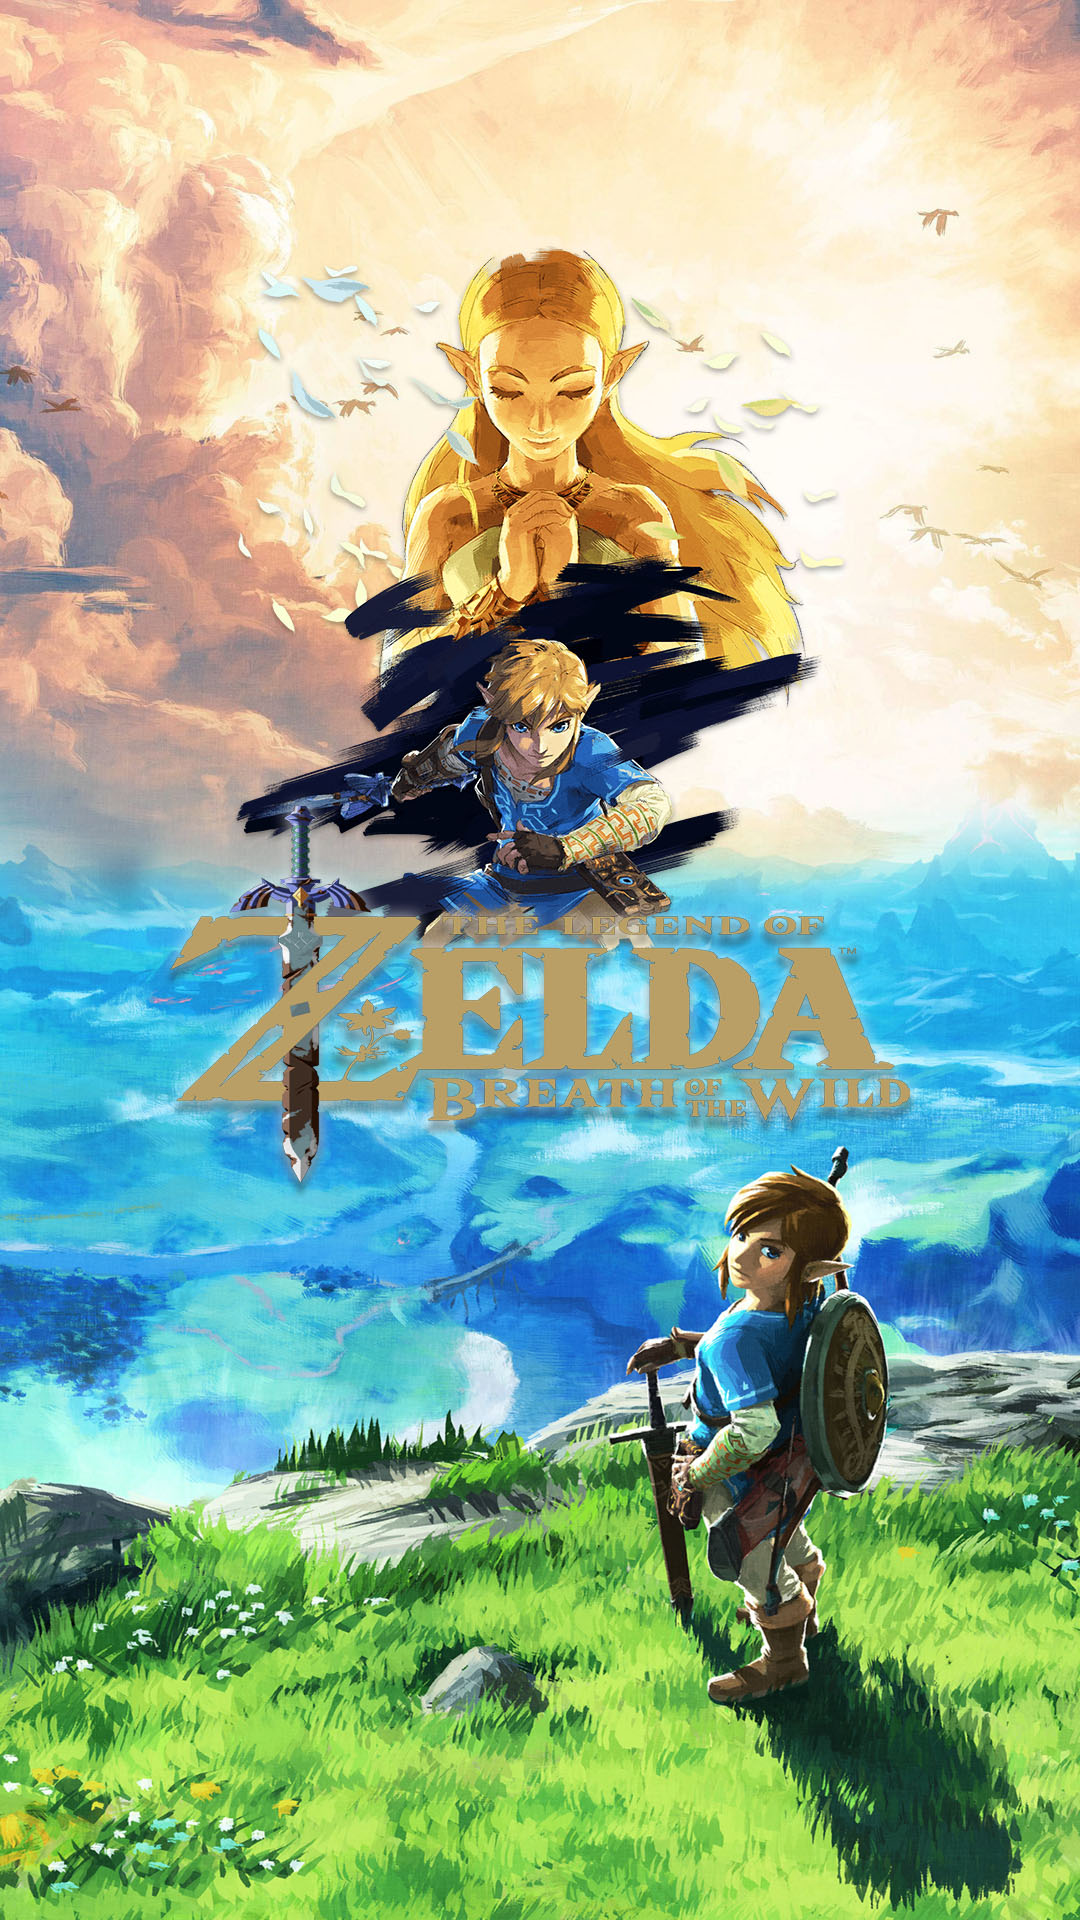 Zelda Phone Wallpaper Picserio Zelda Breath Of The Wild 1080x1920 Wallpaper Teahub Io